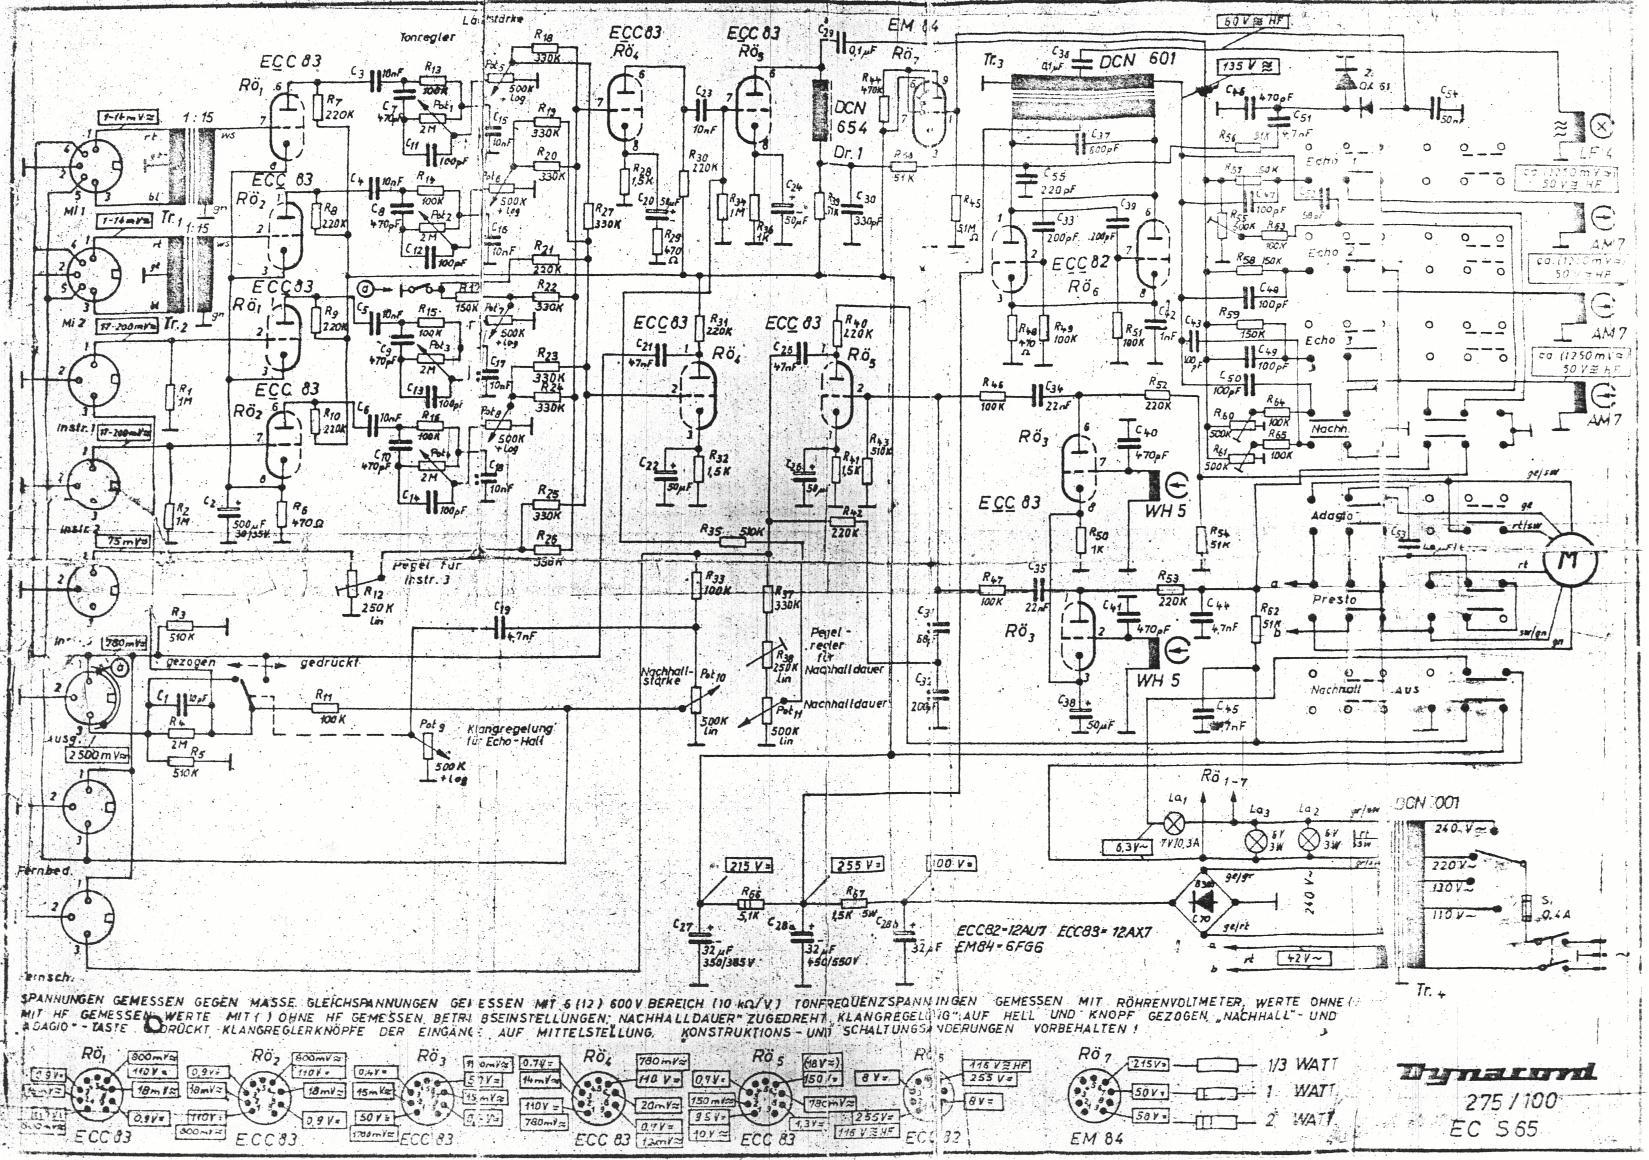 New Bmicrosoft Bnokia B Brm Bmic Bways Bsolution moreover Sd Card Sound Recorder Microchip Sdcard Khz Sandisk furthermore N further Dynacord Echocord furthermore National Circuit Diagram Of. on voice recorder circuit